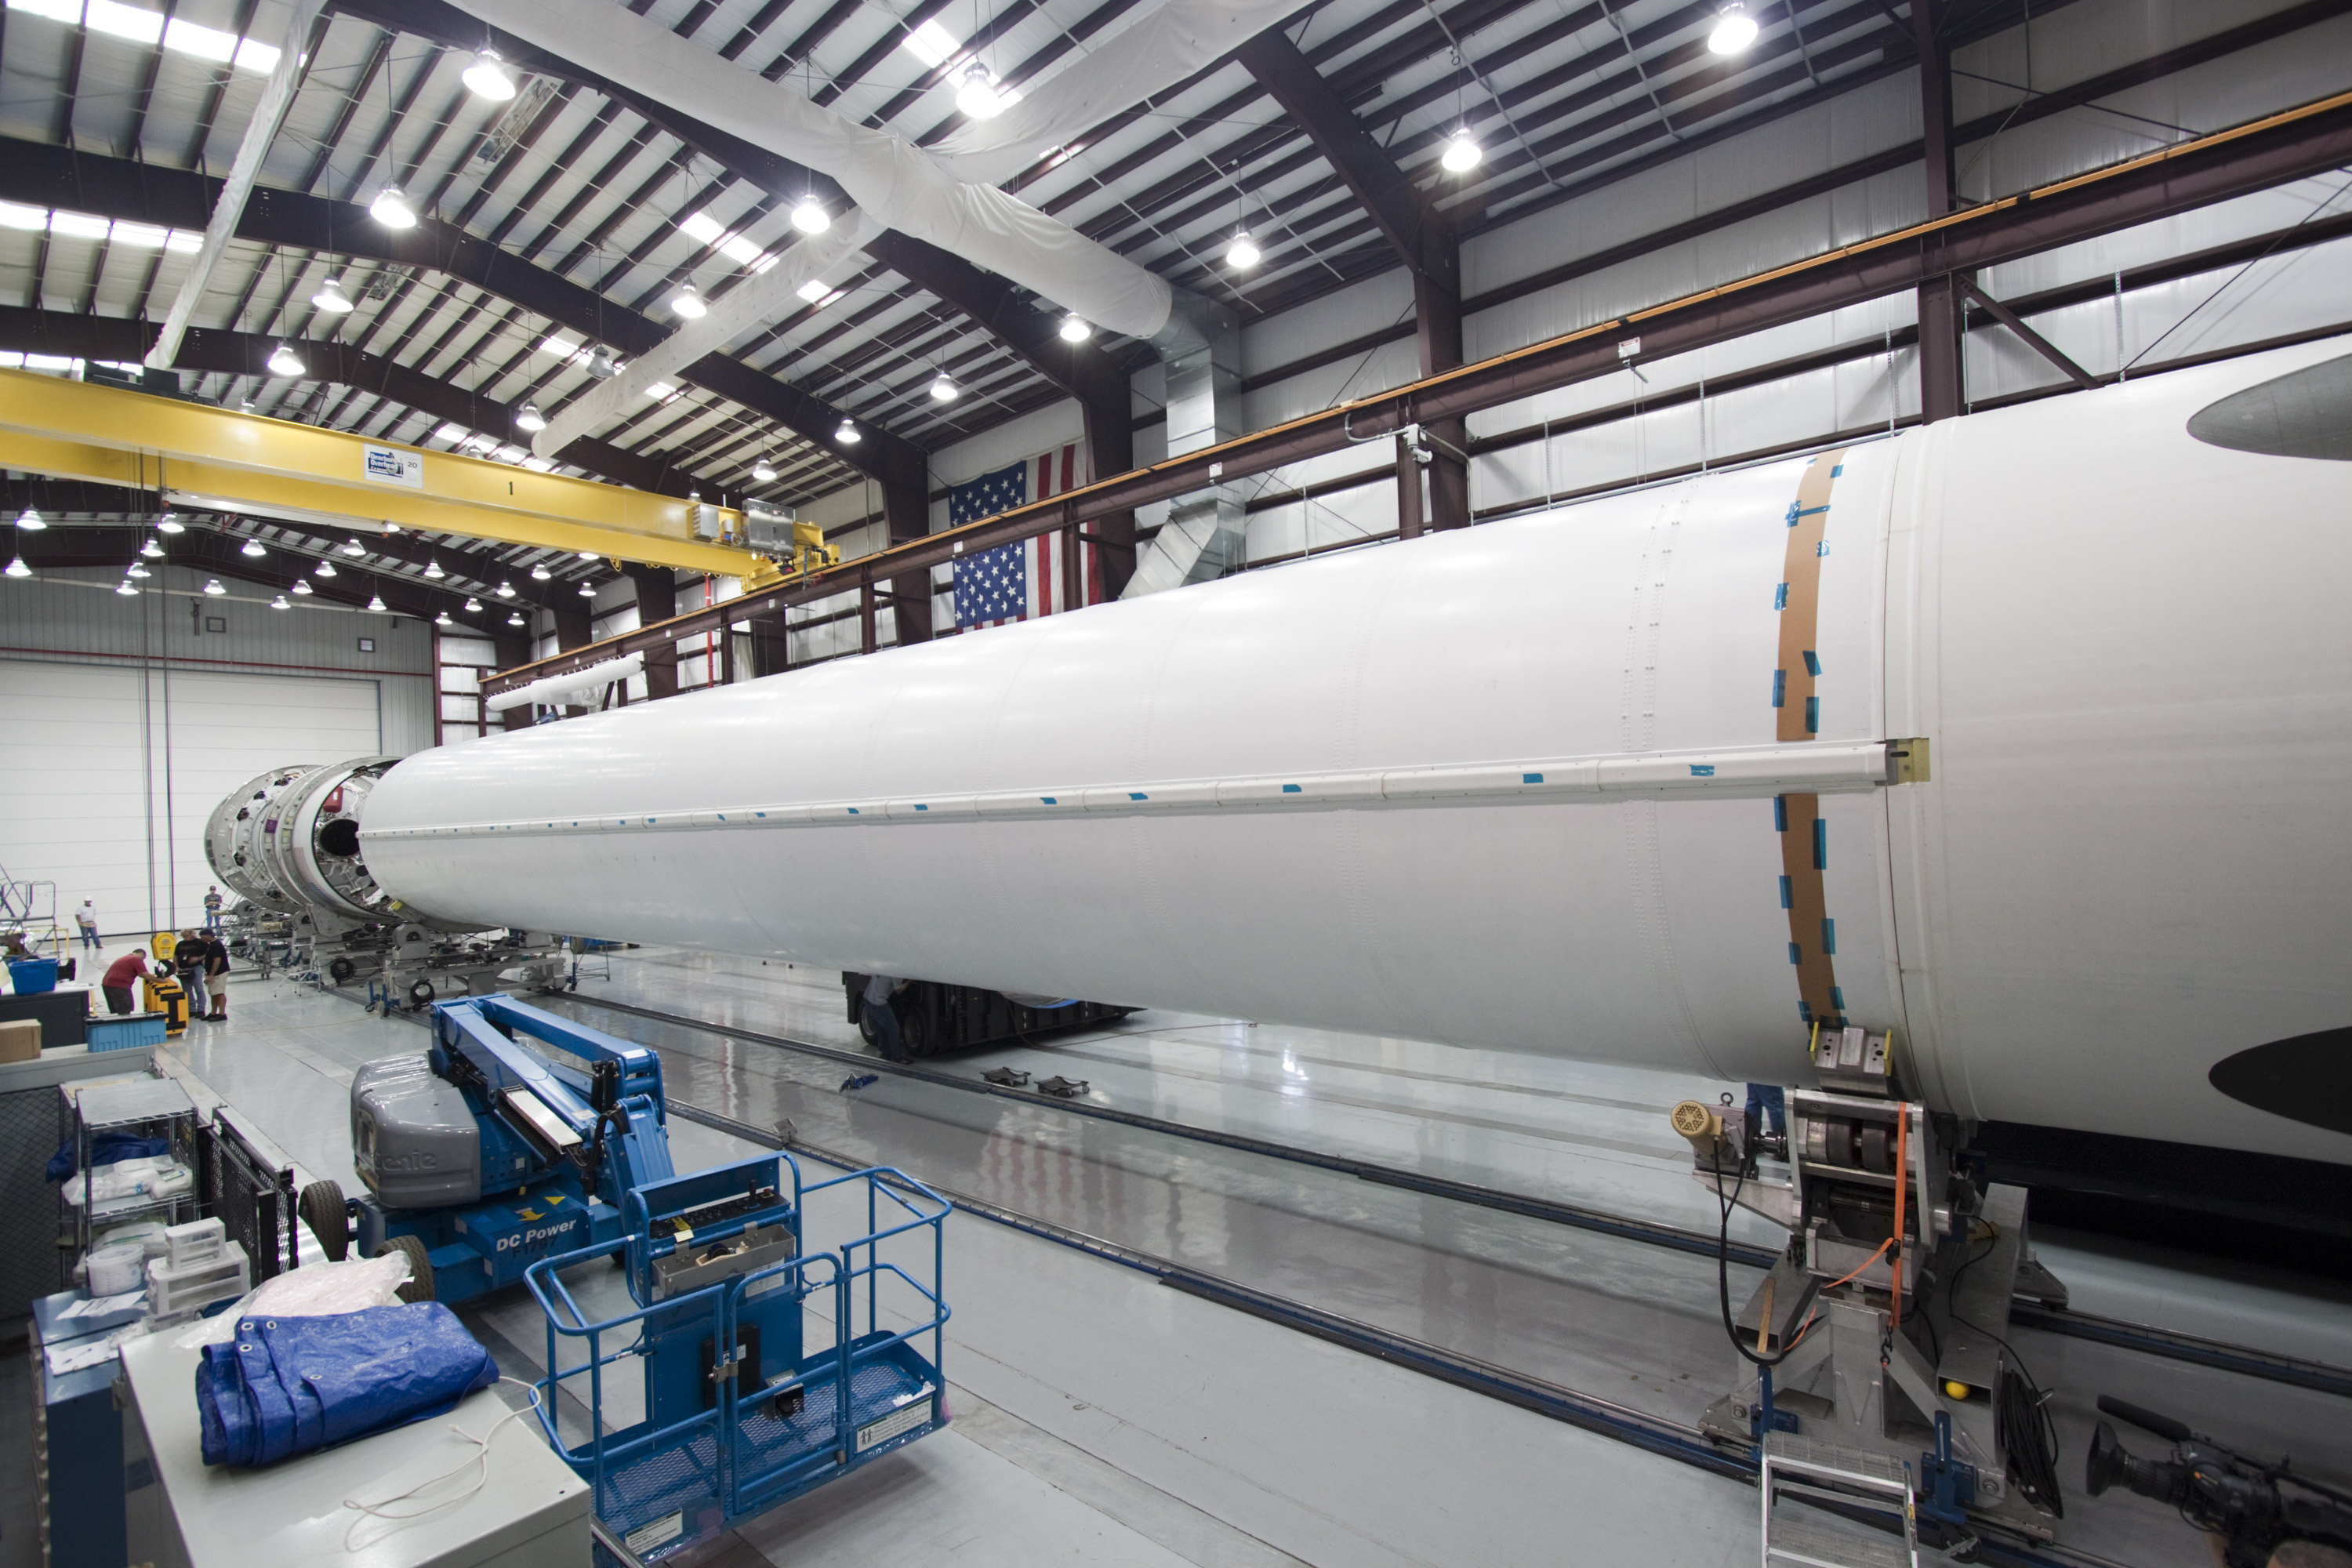 spacex dragon rocket in hanger - photo #15